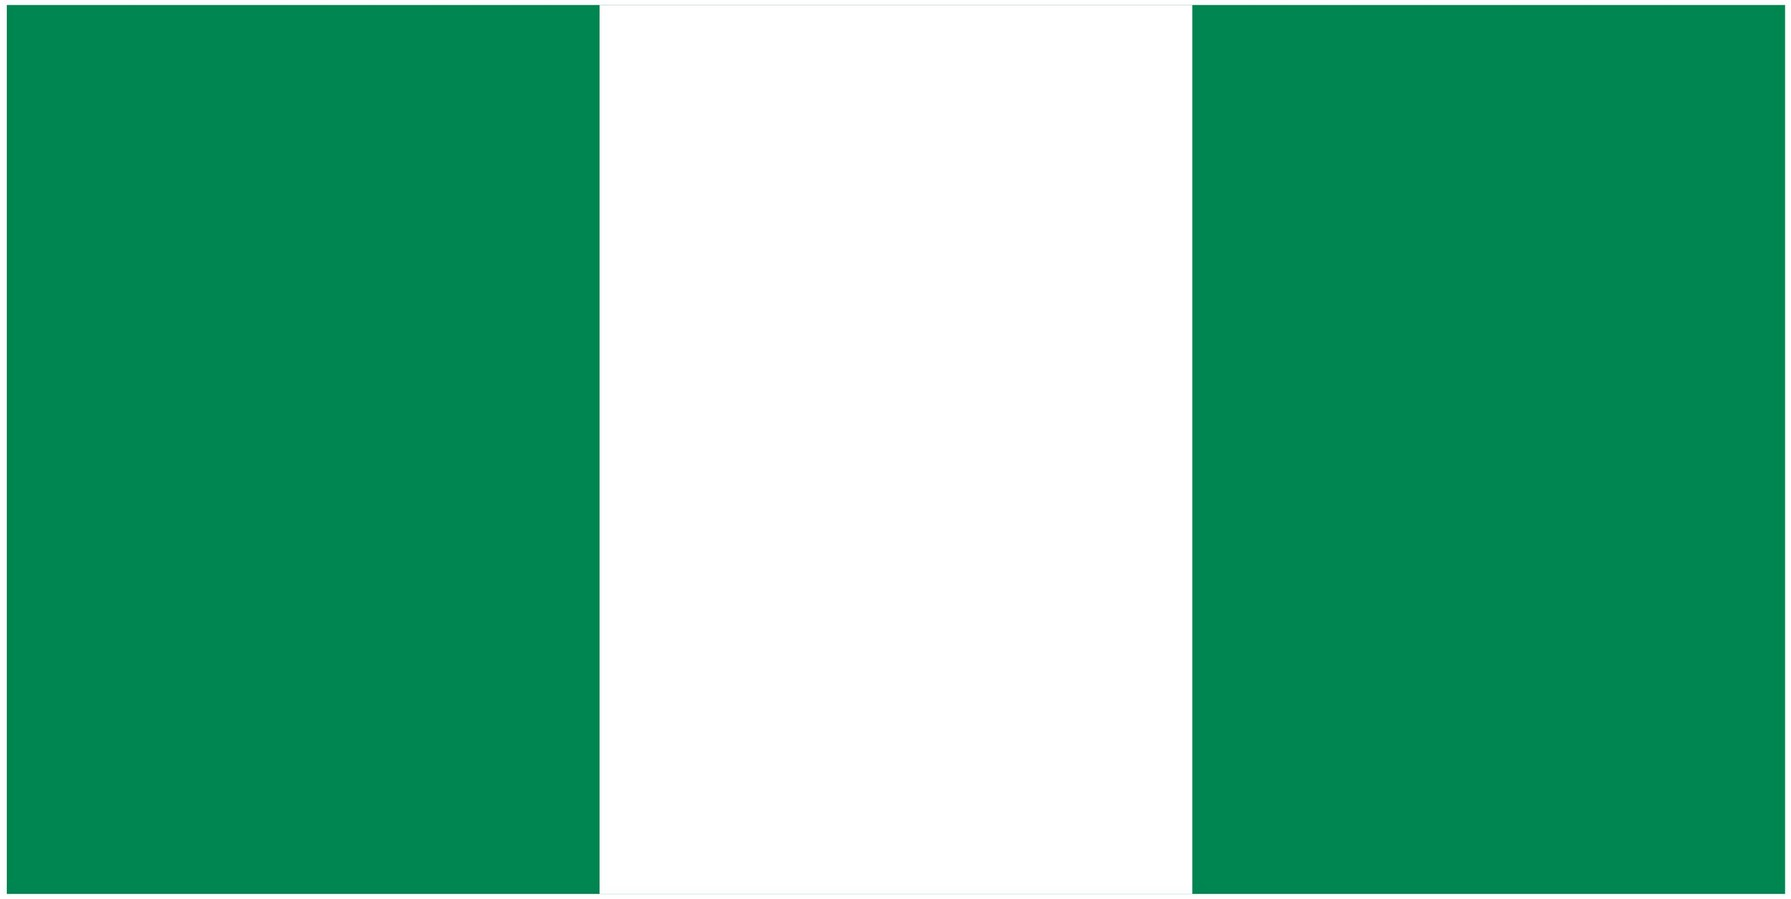 Flag of Nigeria